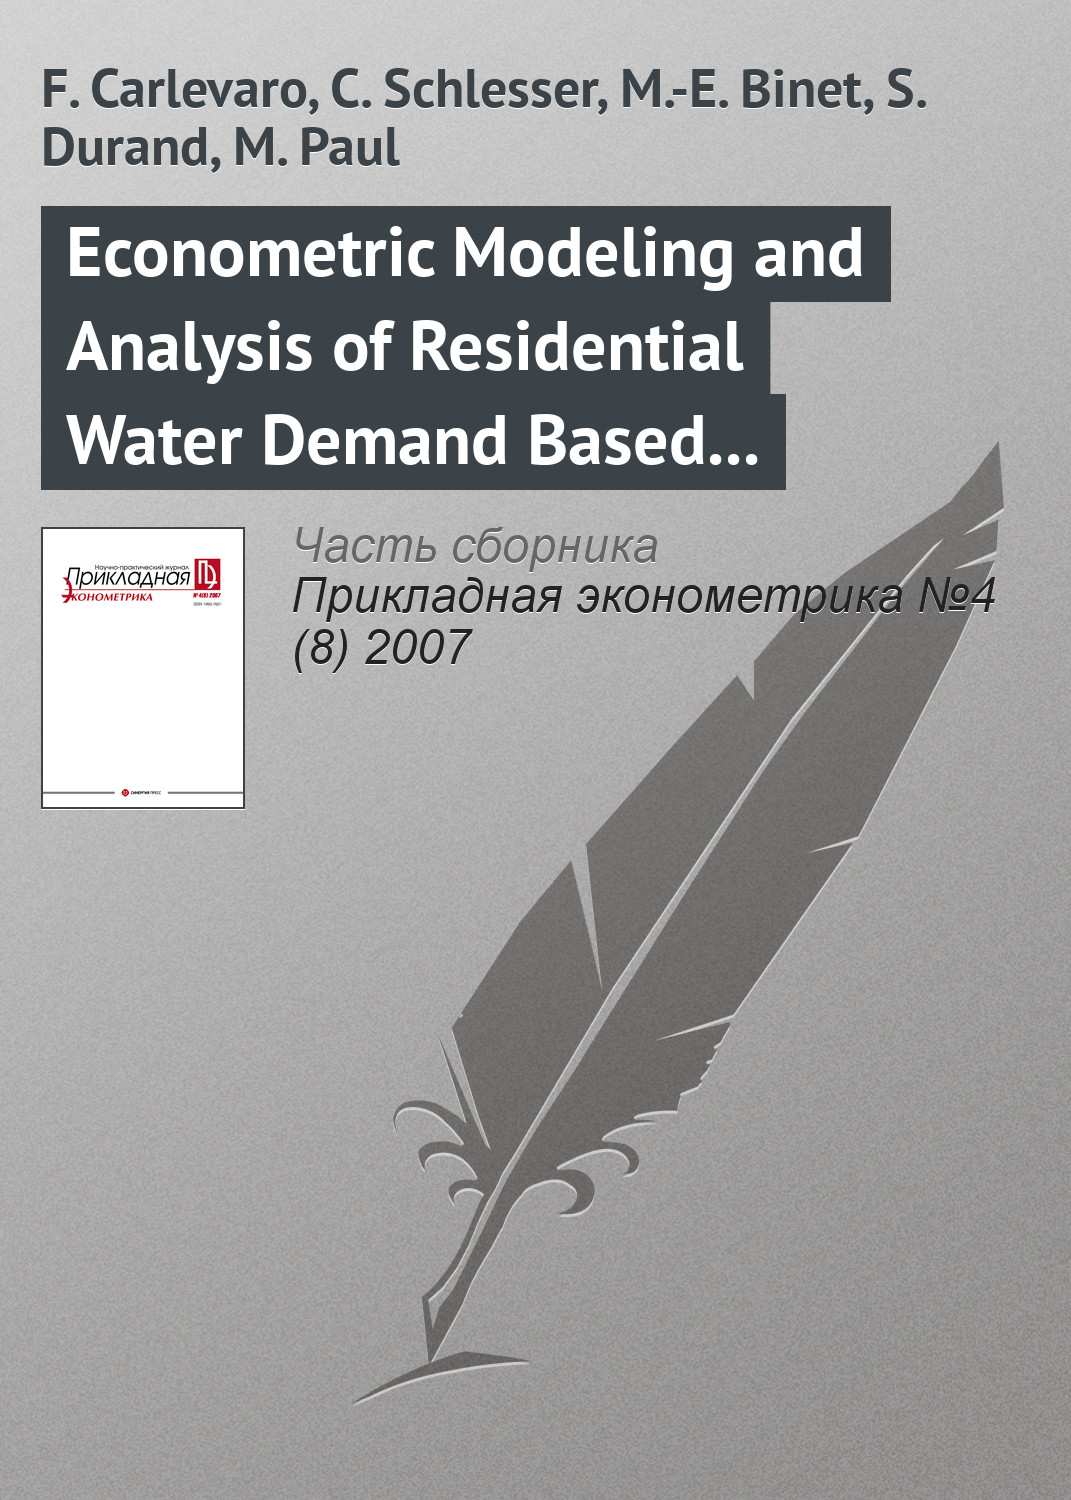 F. Carlevaro Econometric Modeling and Analysis of Residential Water Demand Based on Unbalanced Panel Data 110v antioxidant alkaline water ionizer by enagic model oh 806 3w